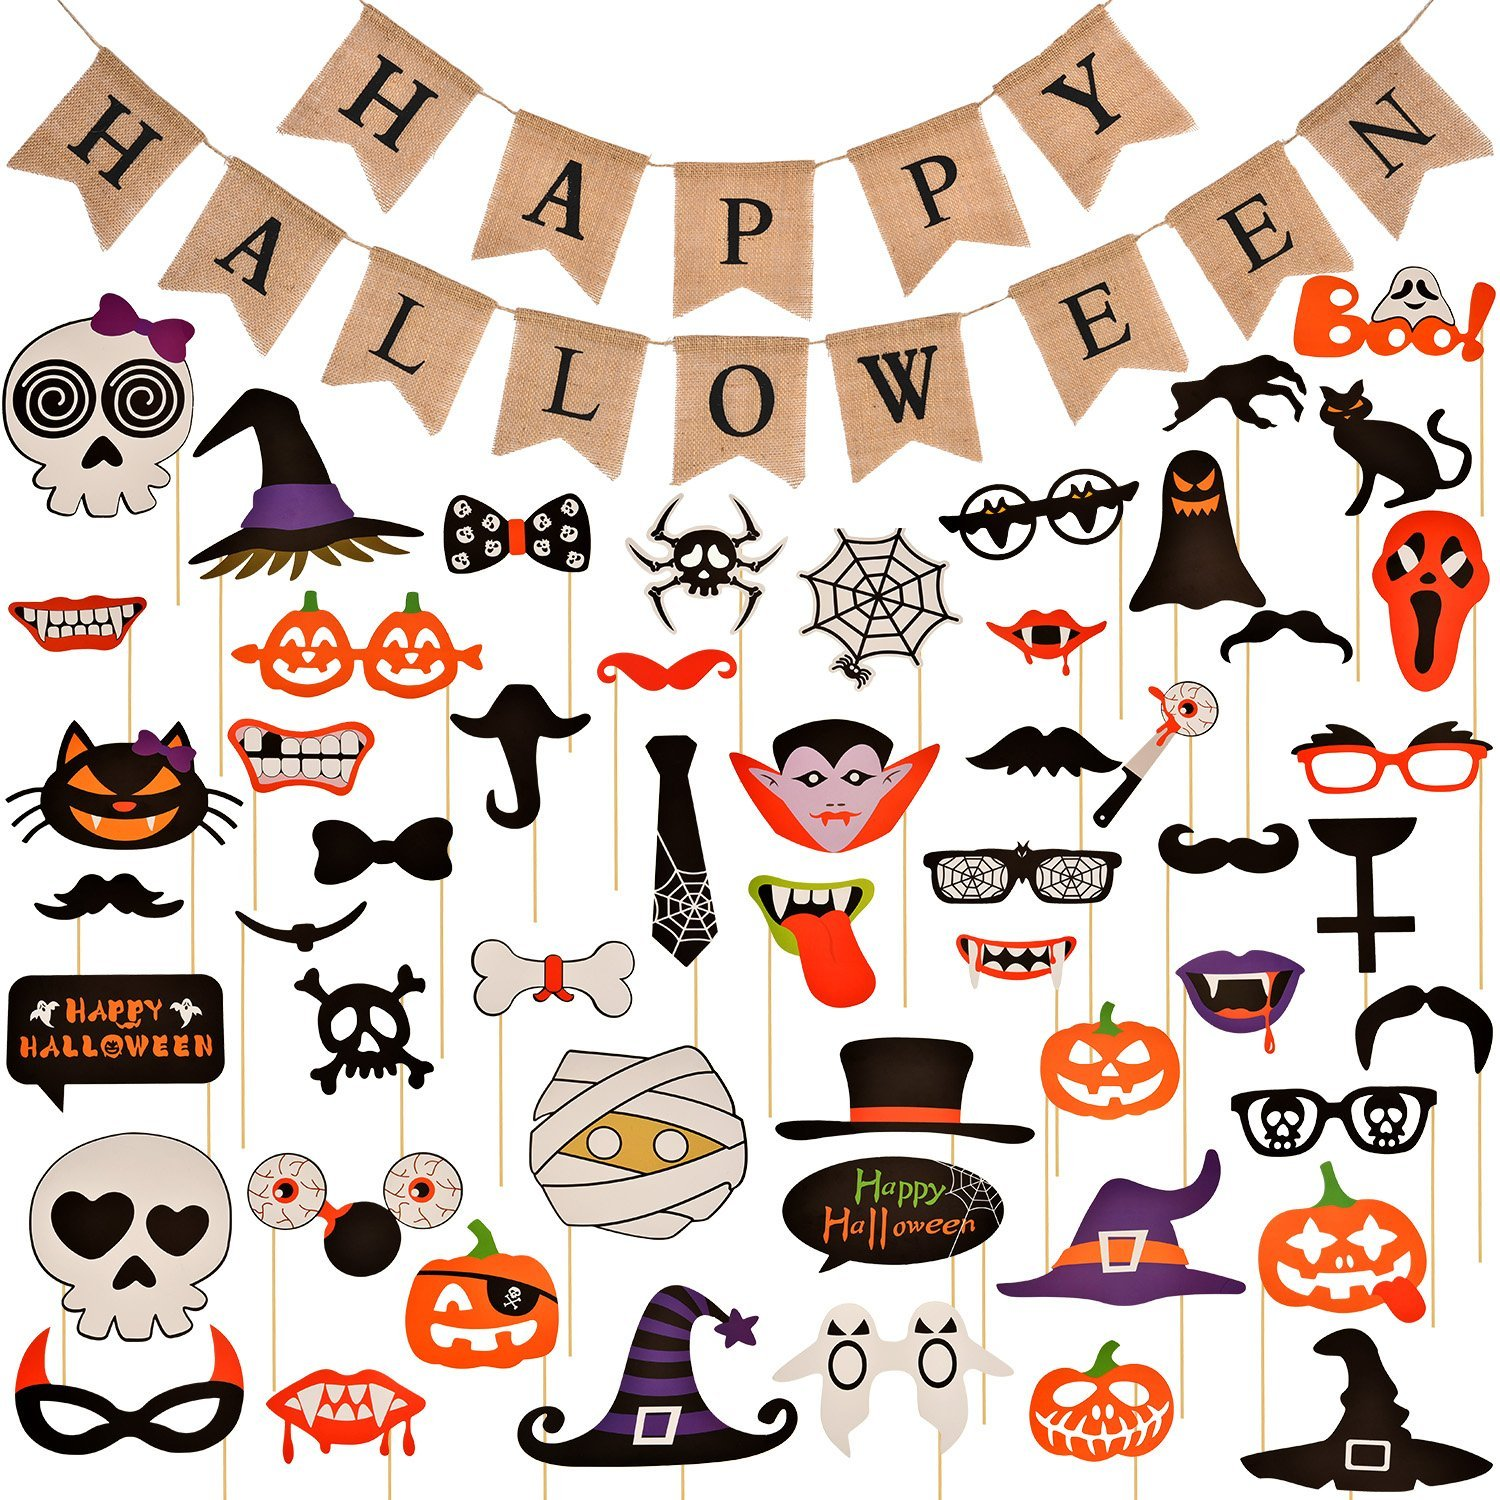 Jovitec Halloween Burlap Banner 52 Pieces Assorted Photo Booth Props Party Festival Halloween Decorations